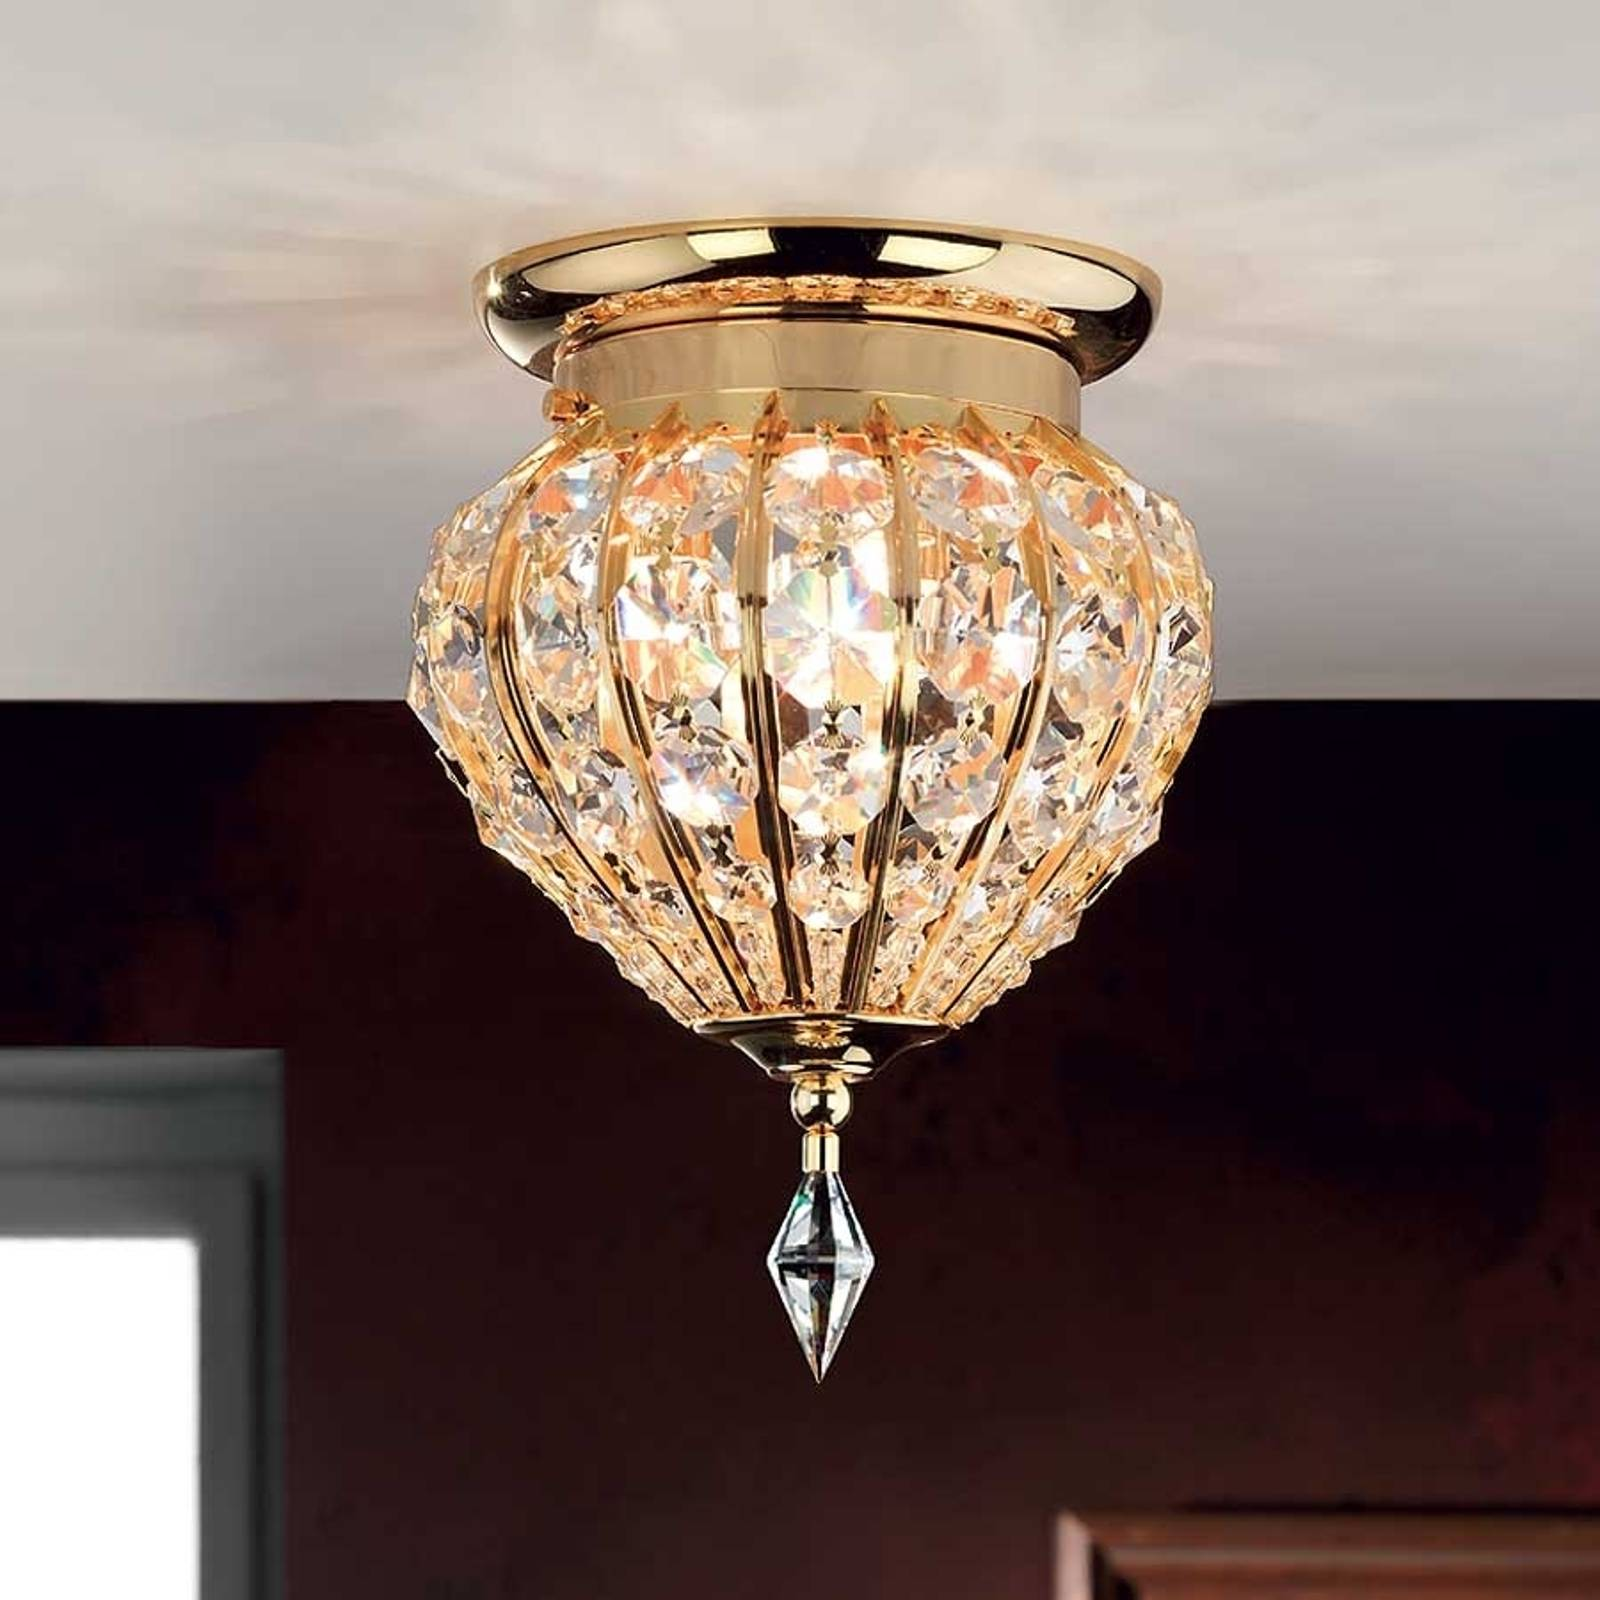 Moskva Crystal Ceiling Light 17 cm from Orion